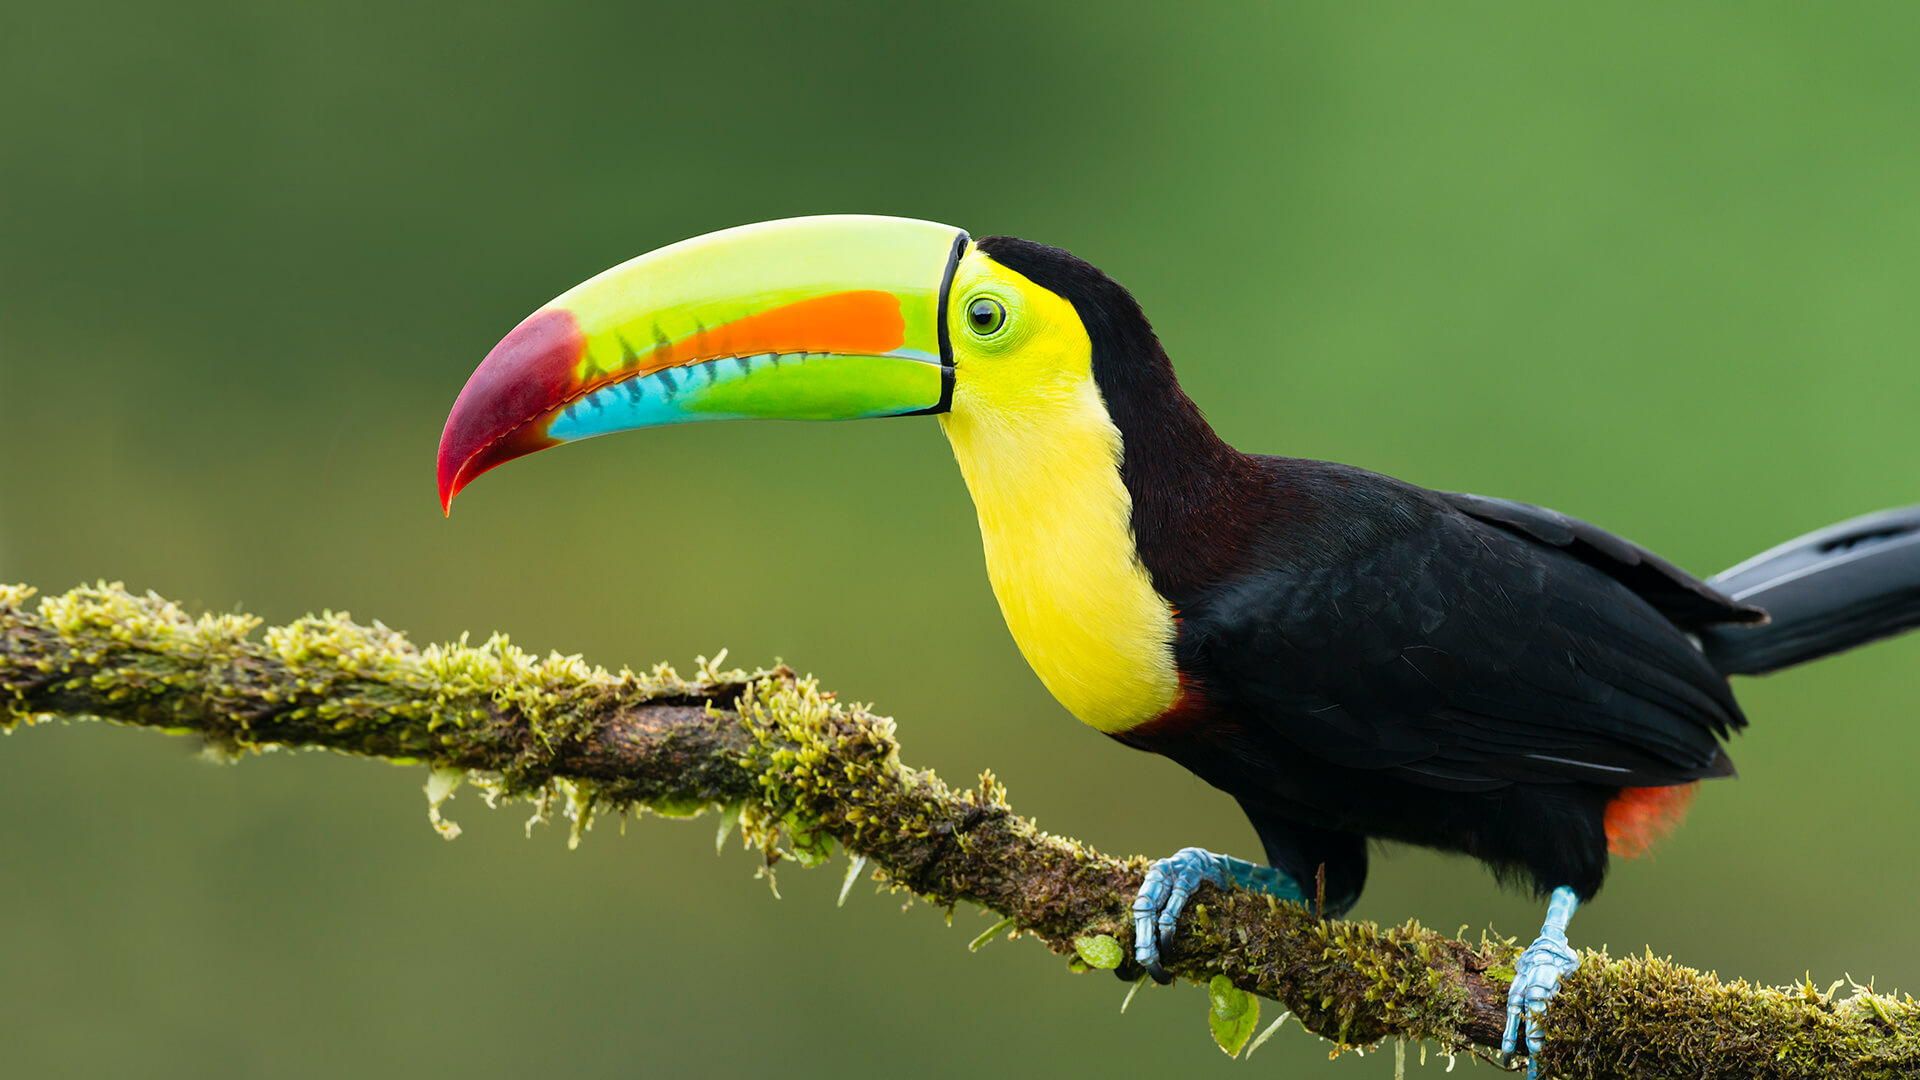 The entire body of Toucan is covered with black feathers.